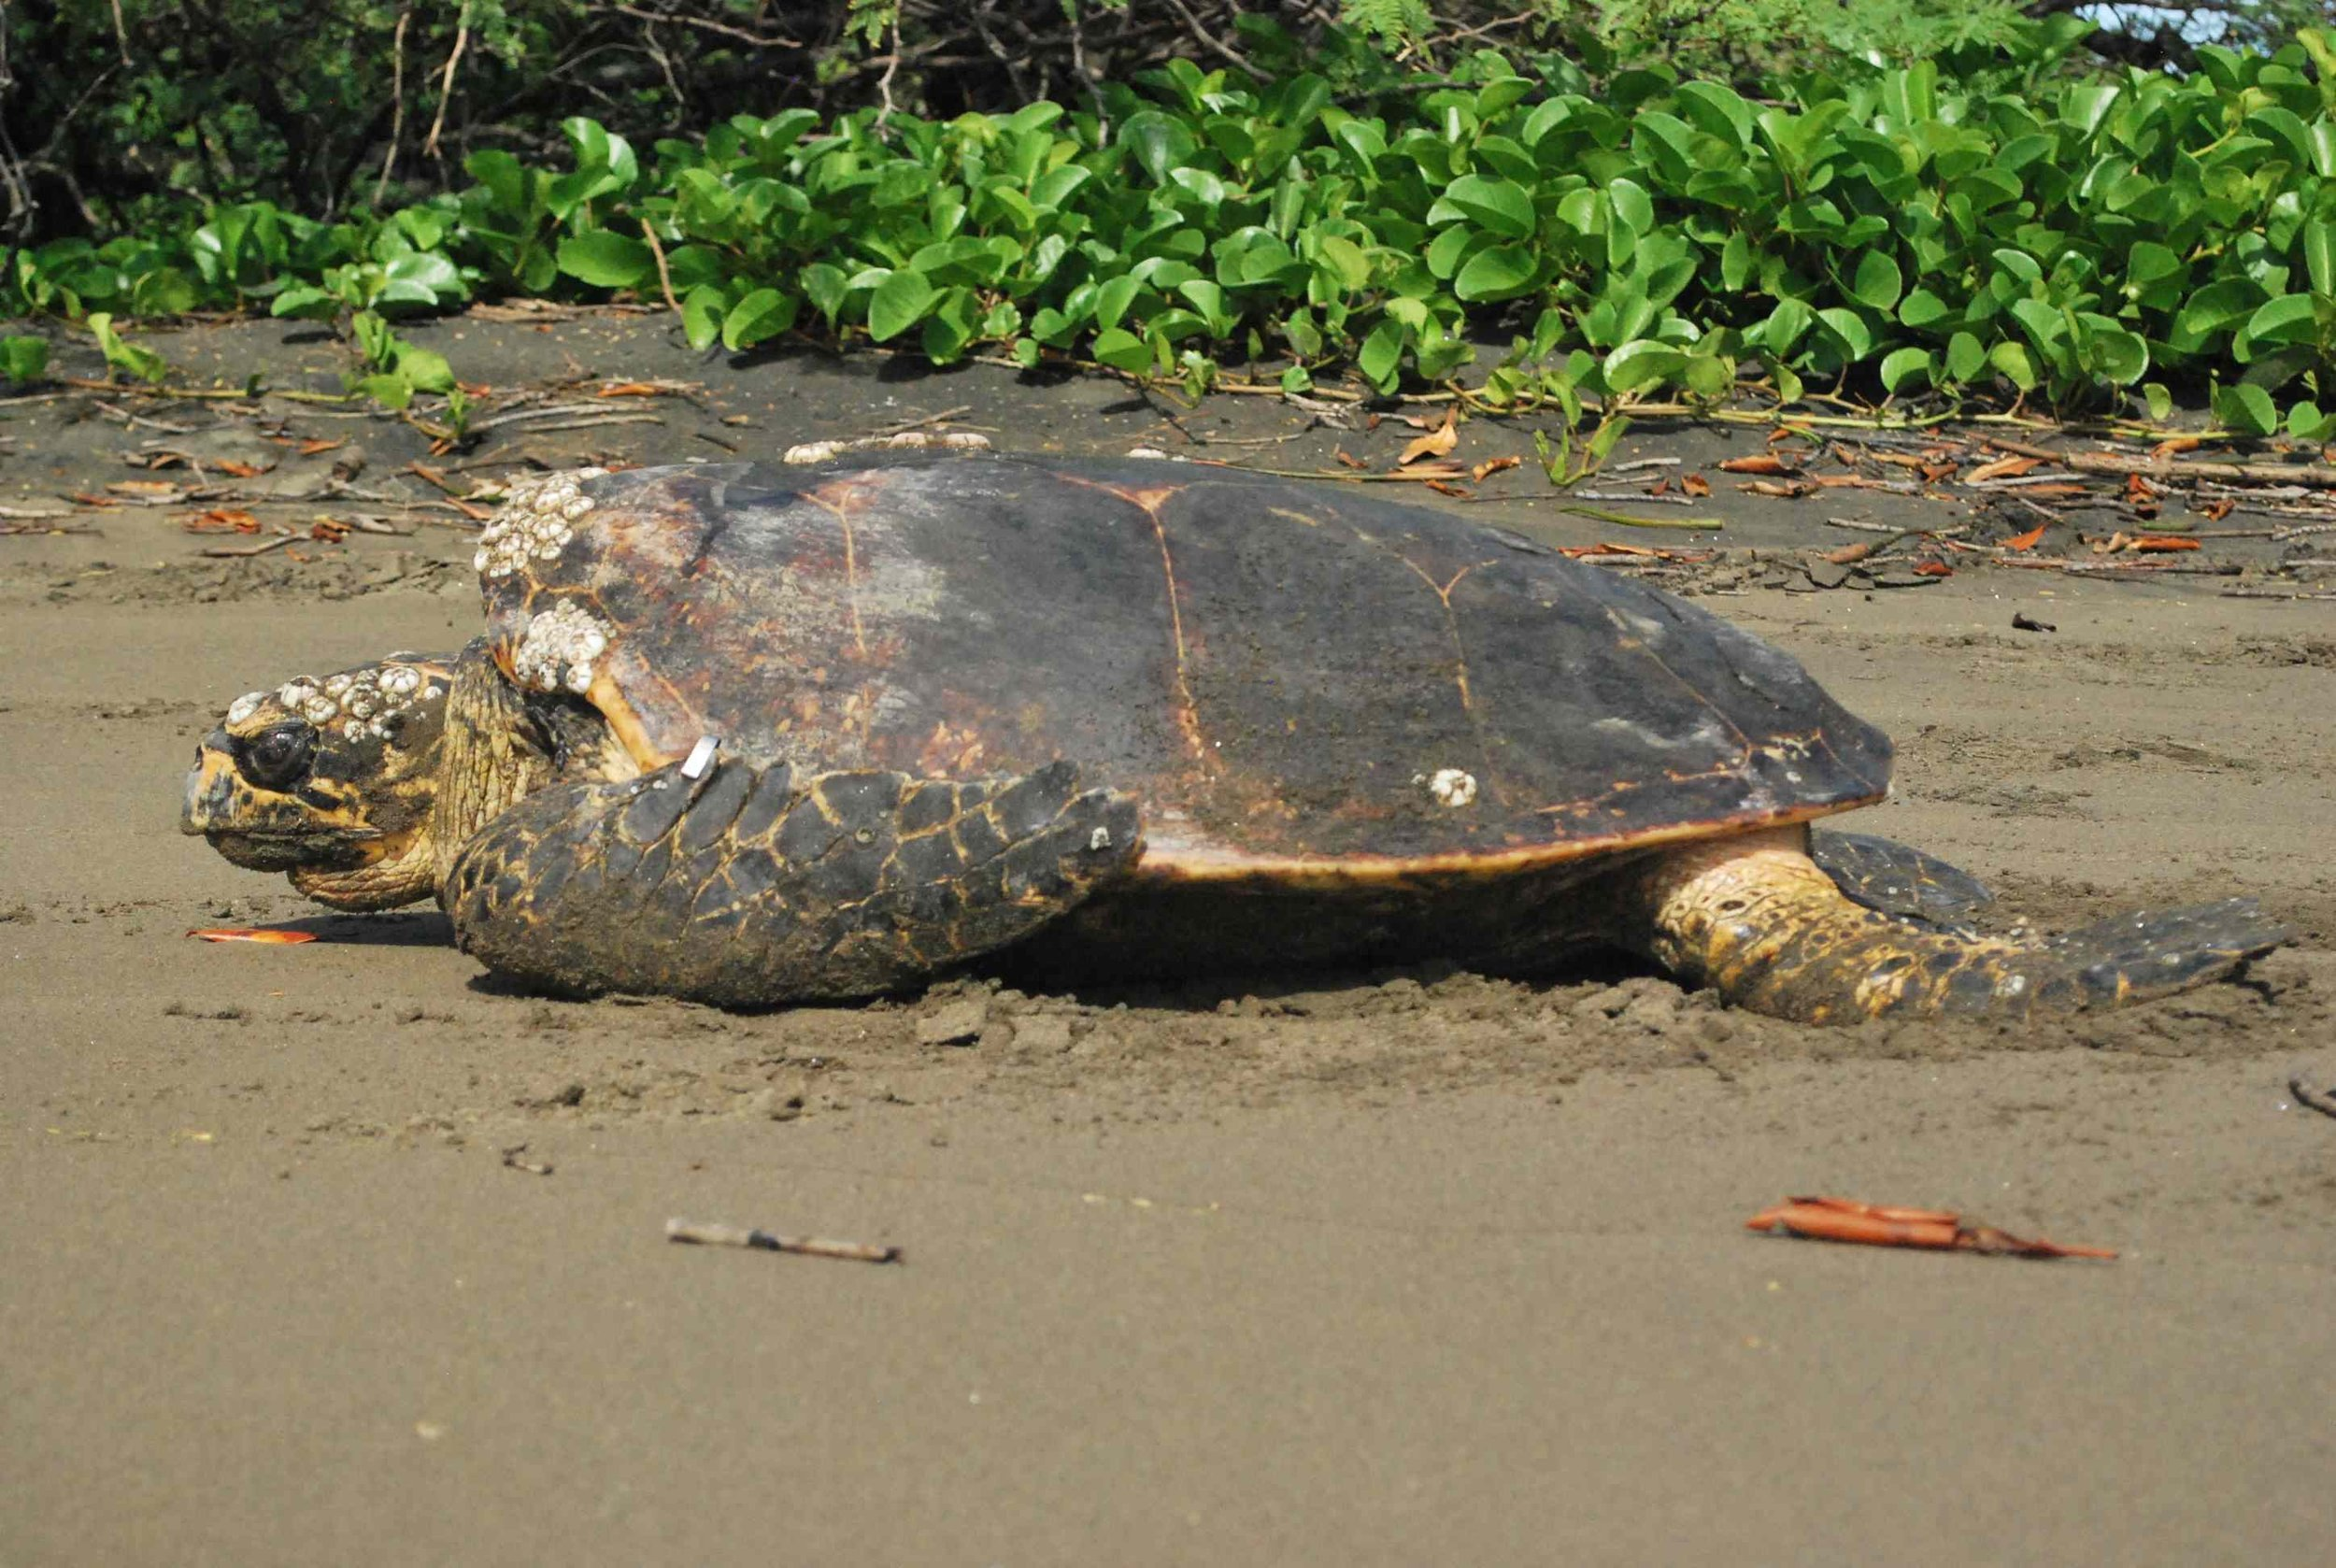 Day 5: Head out for another full day of turtle research, this time with hawksbill turtles